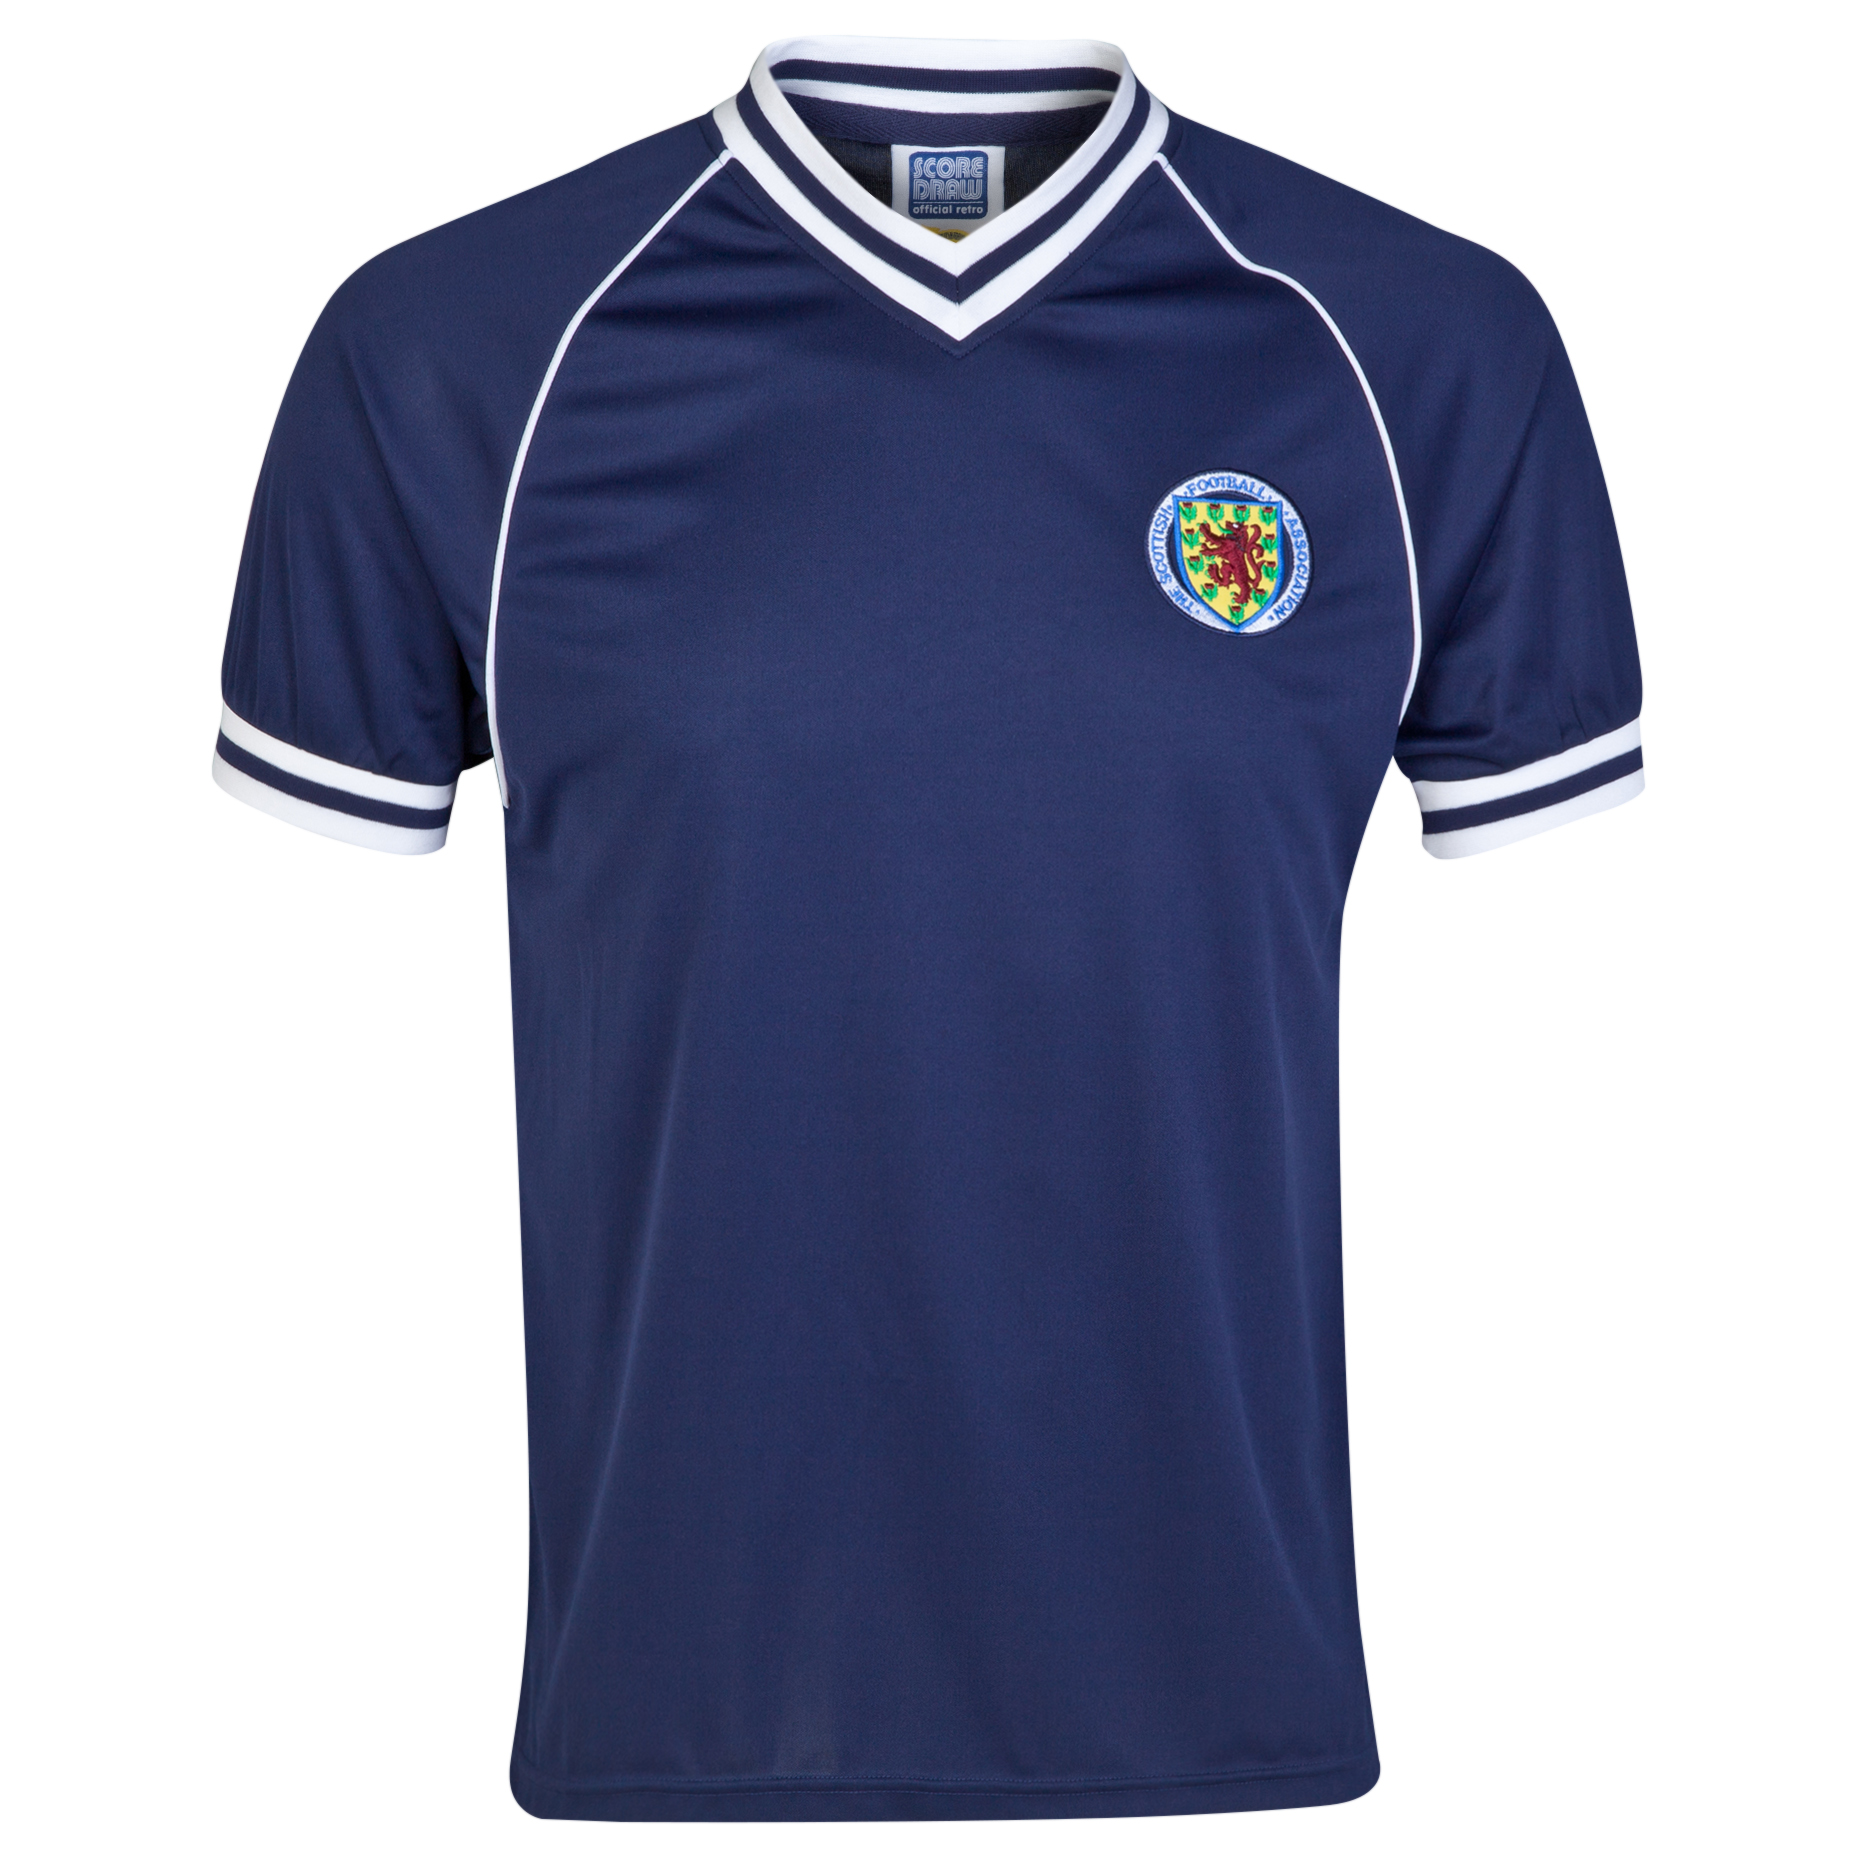 Scotland 1982 World Cup Retro Shirt